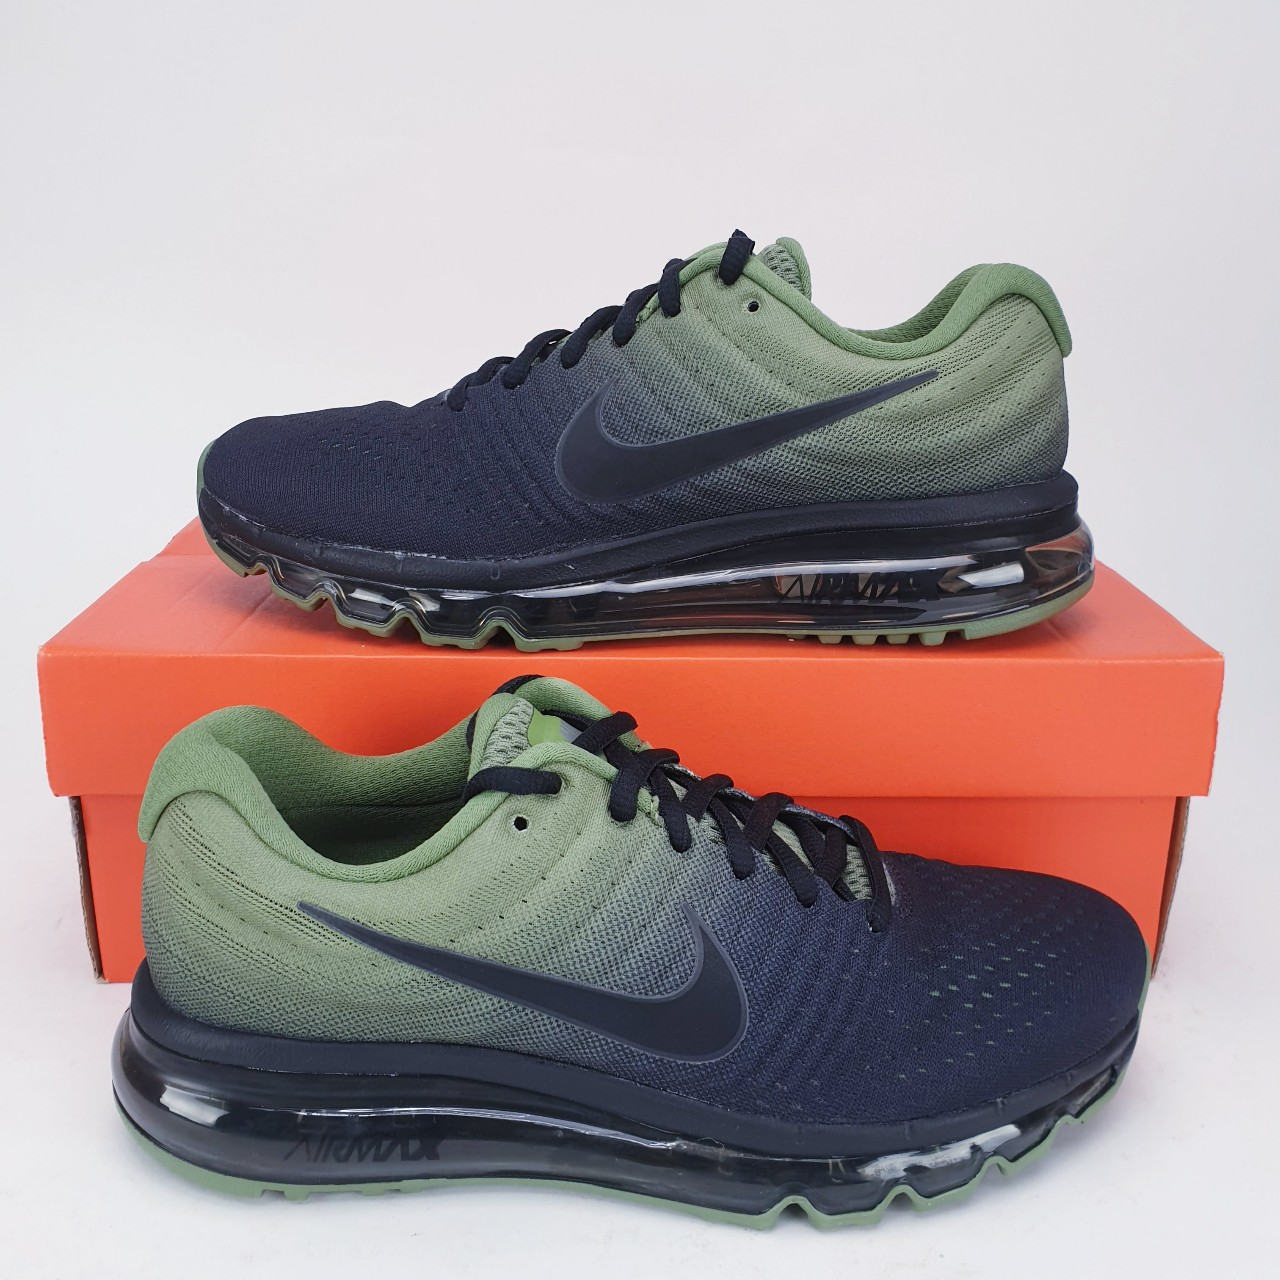 Nike Air Max 2017 Junior Trainers Shoes * New in...